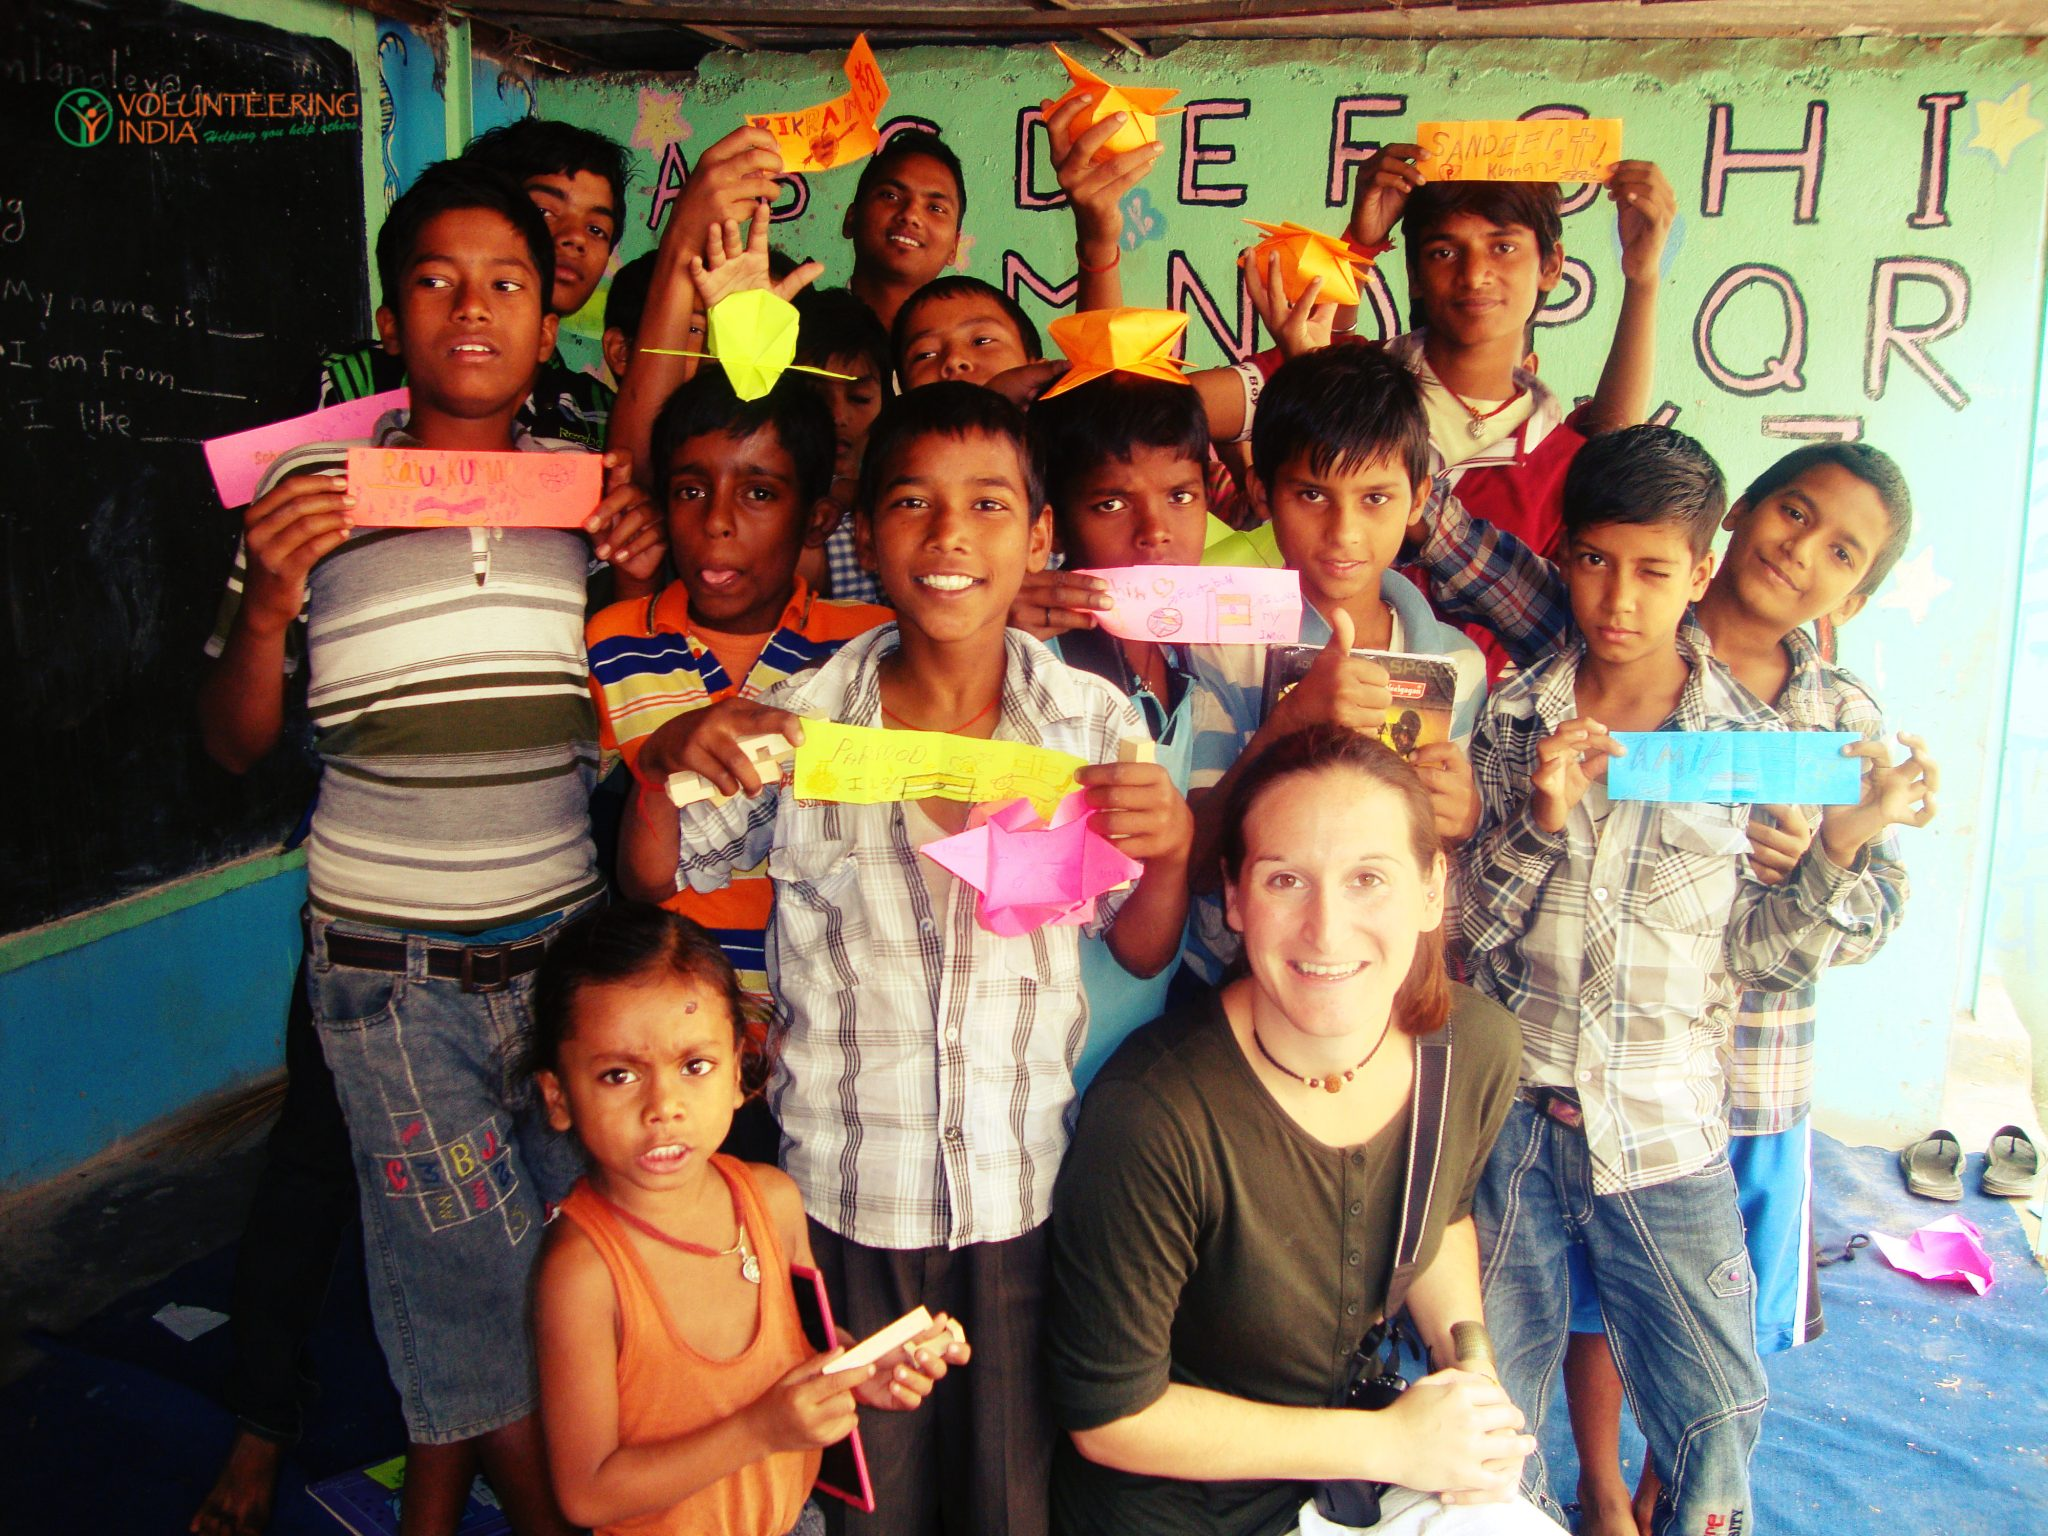 Volunteer Programs in India for High School Students